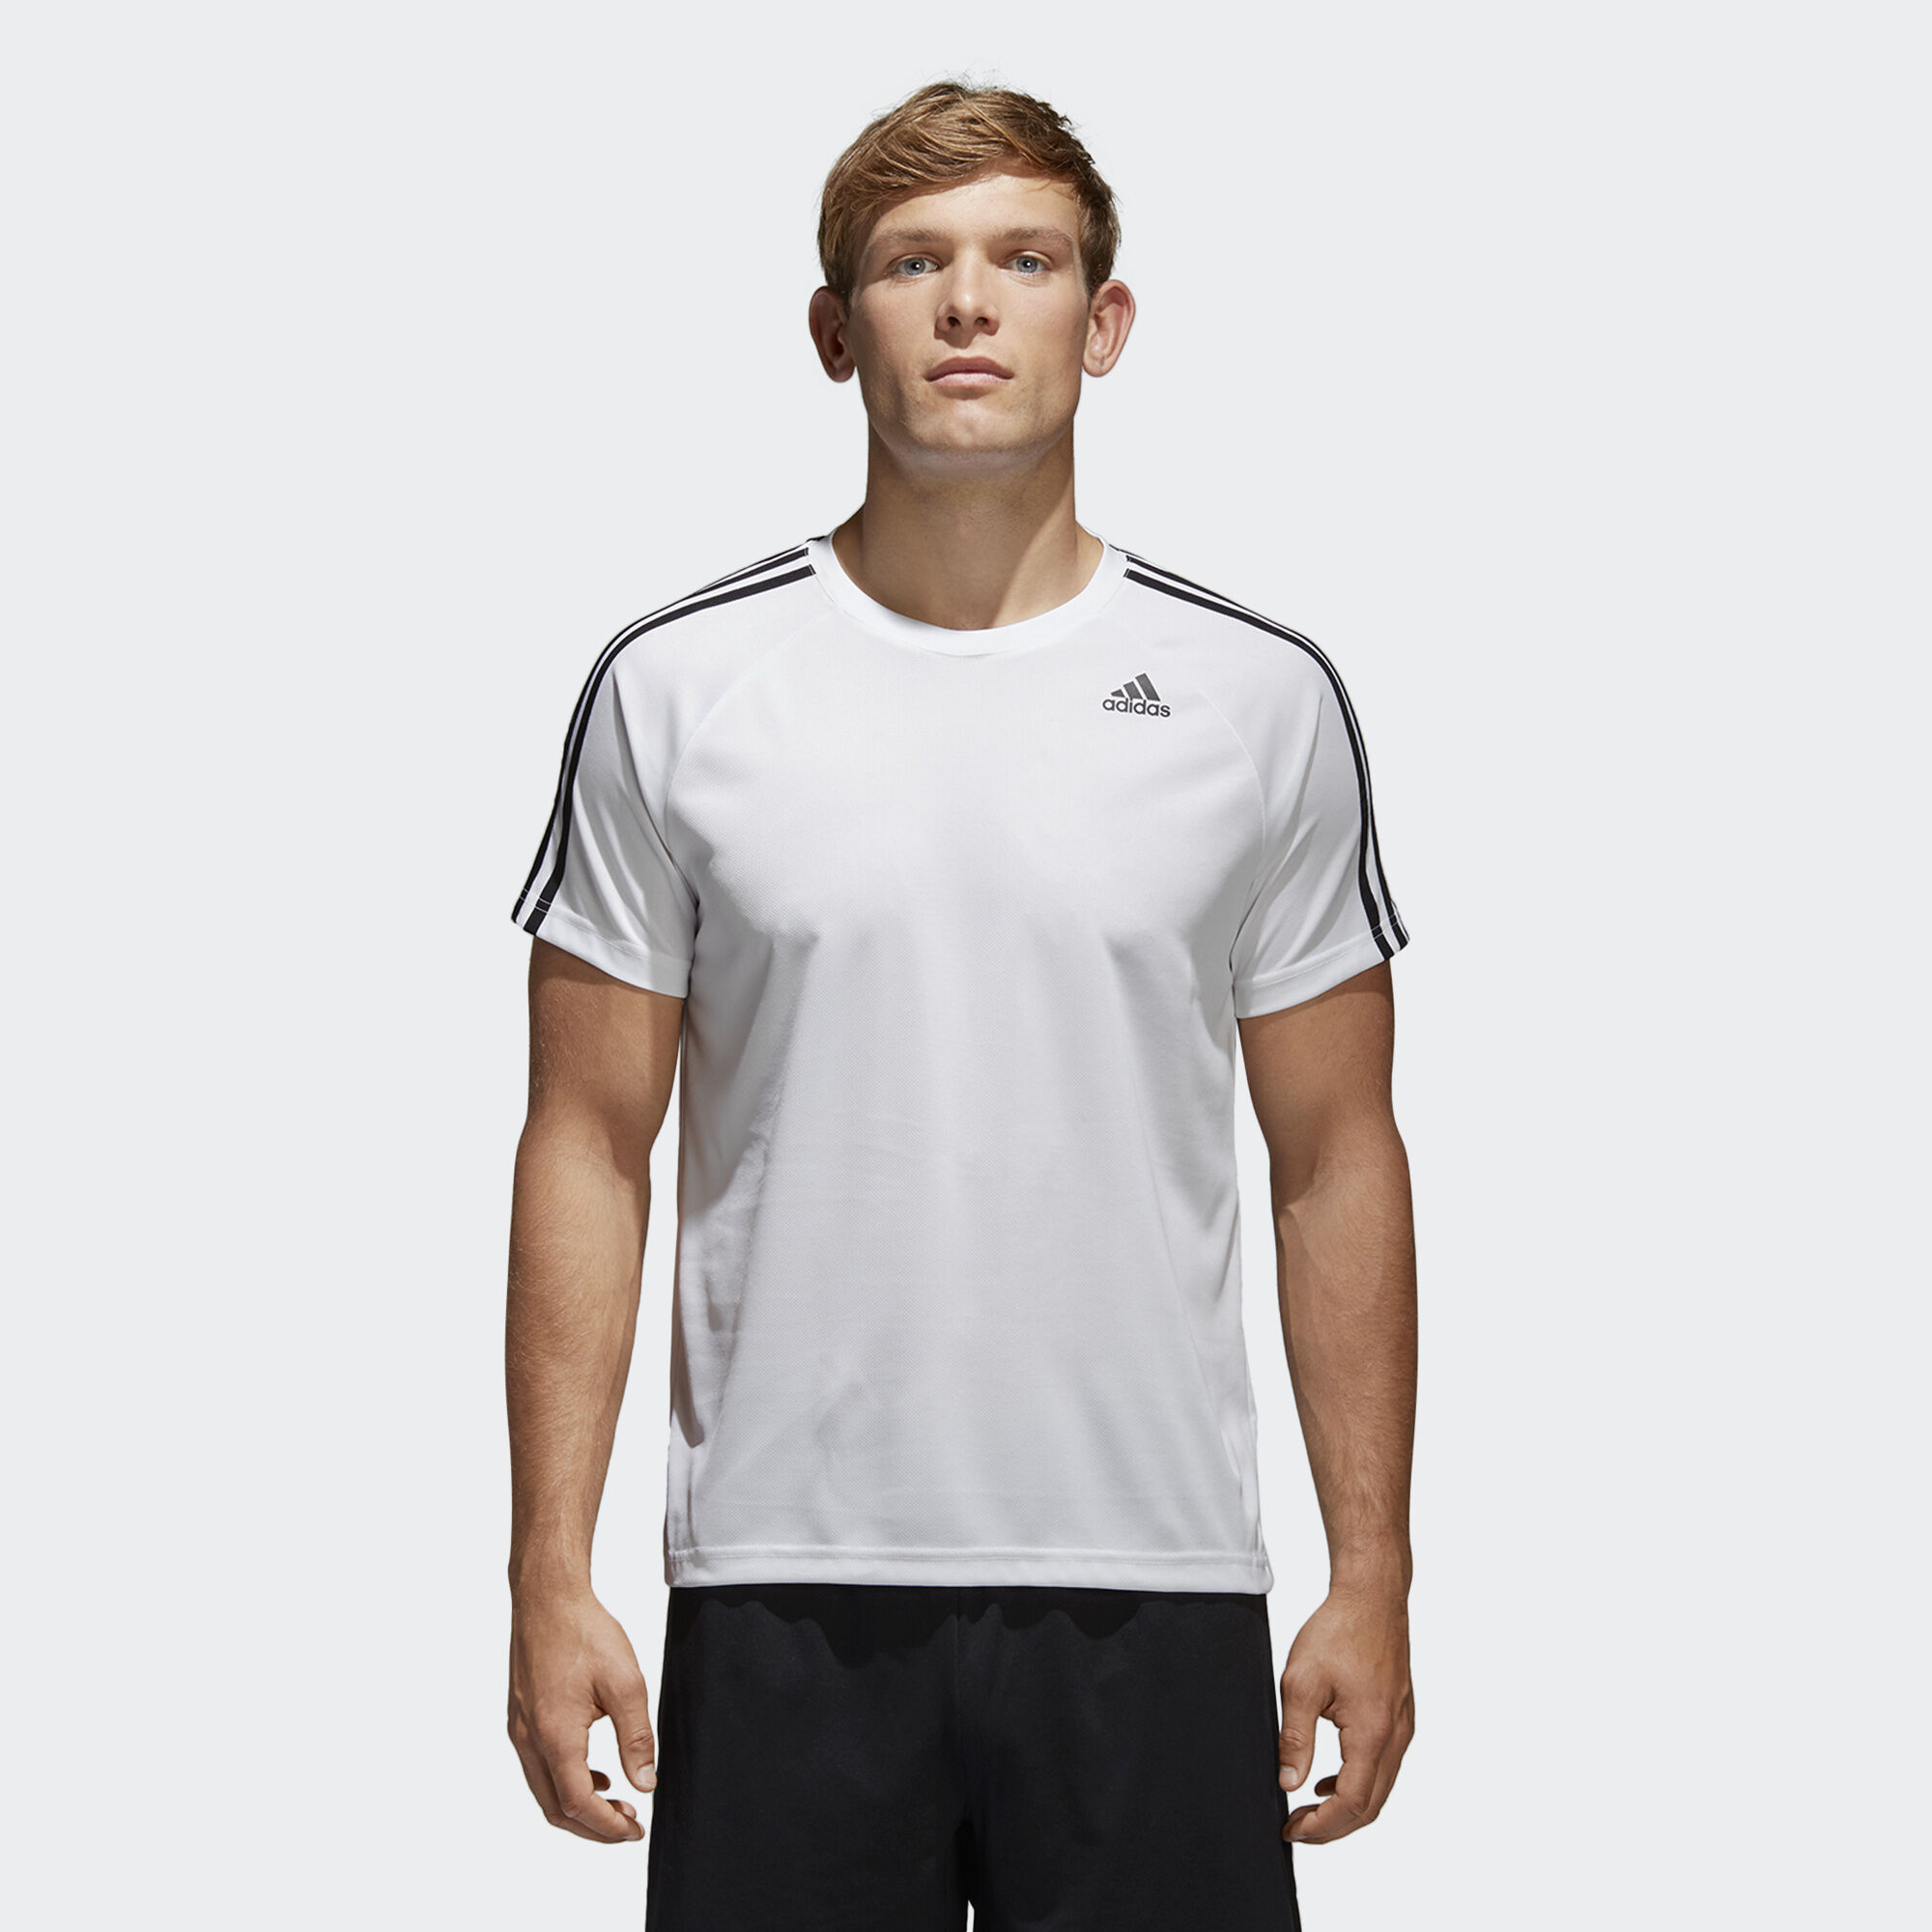 adidas t-shirt 3 stripes